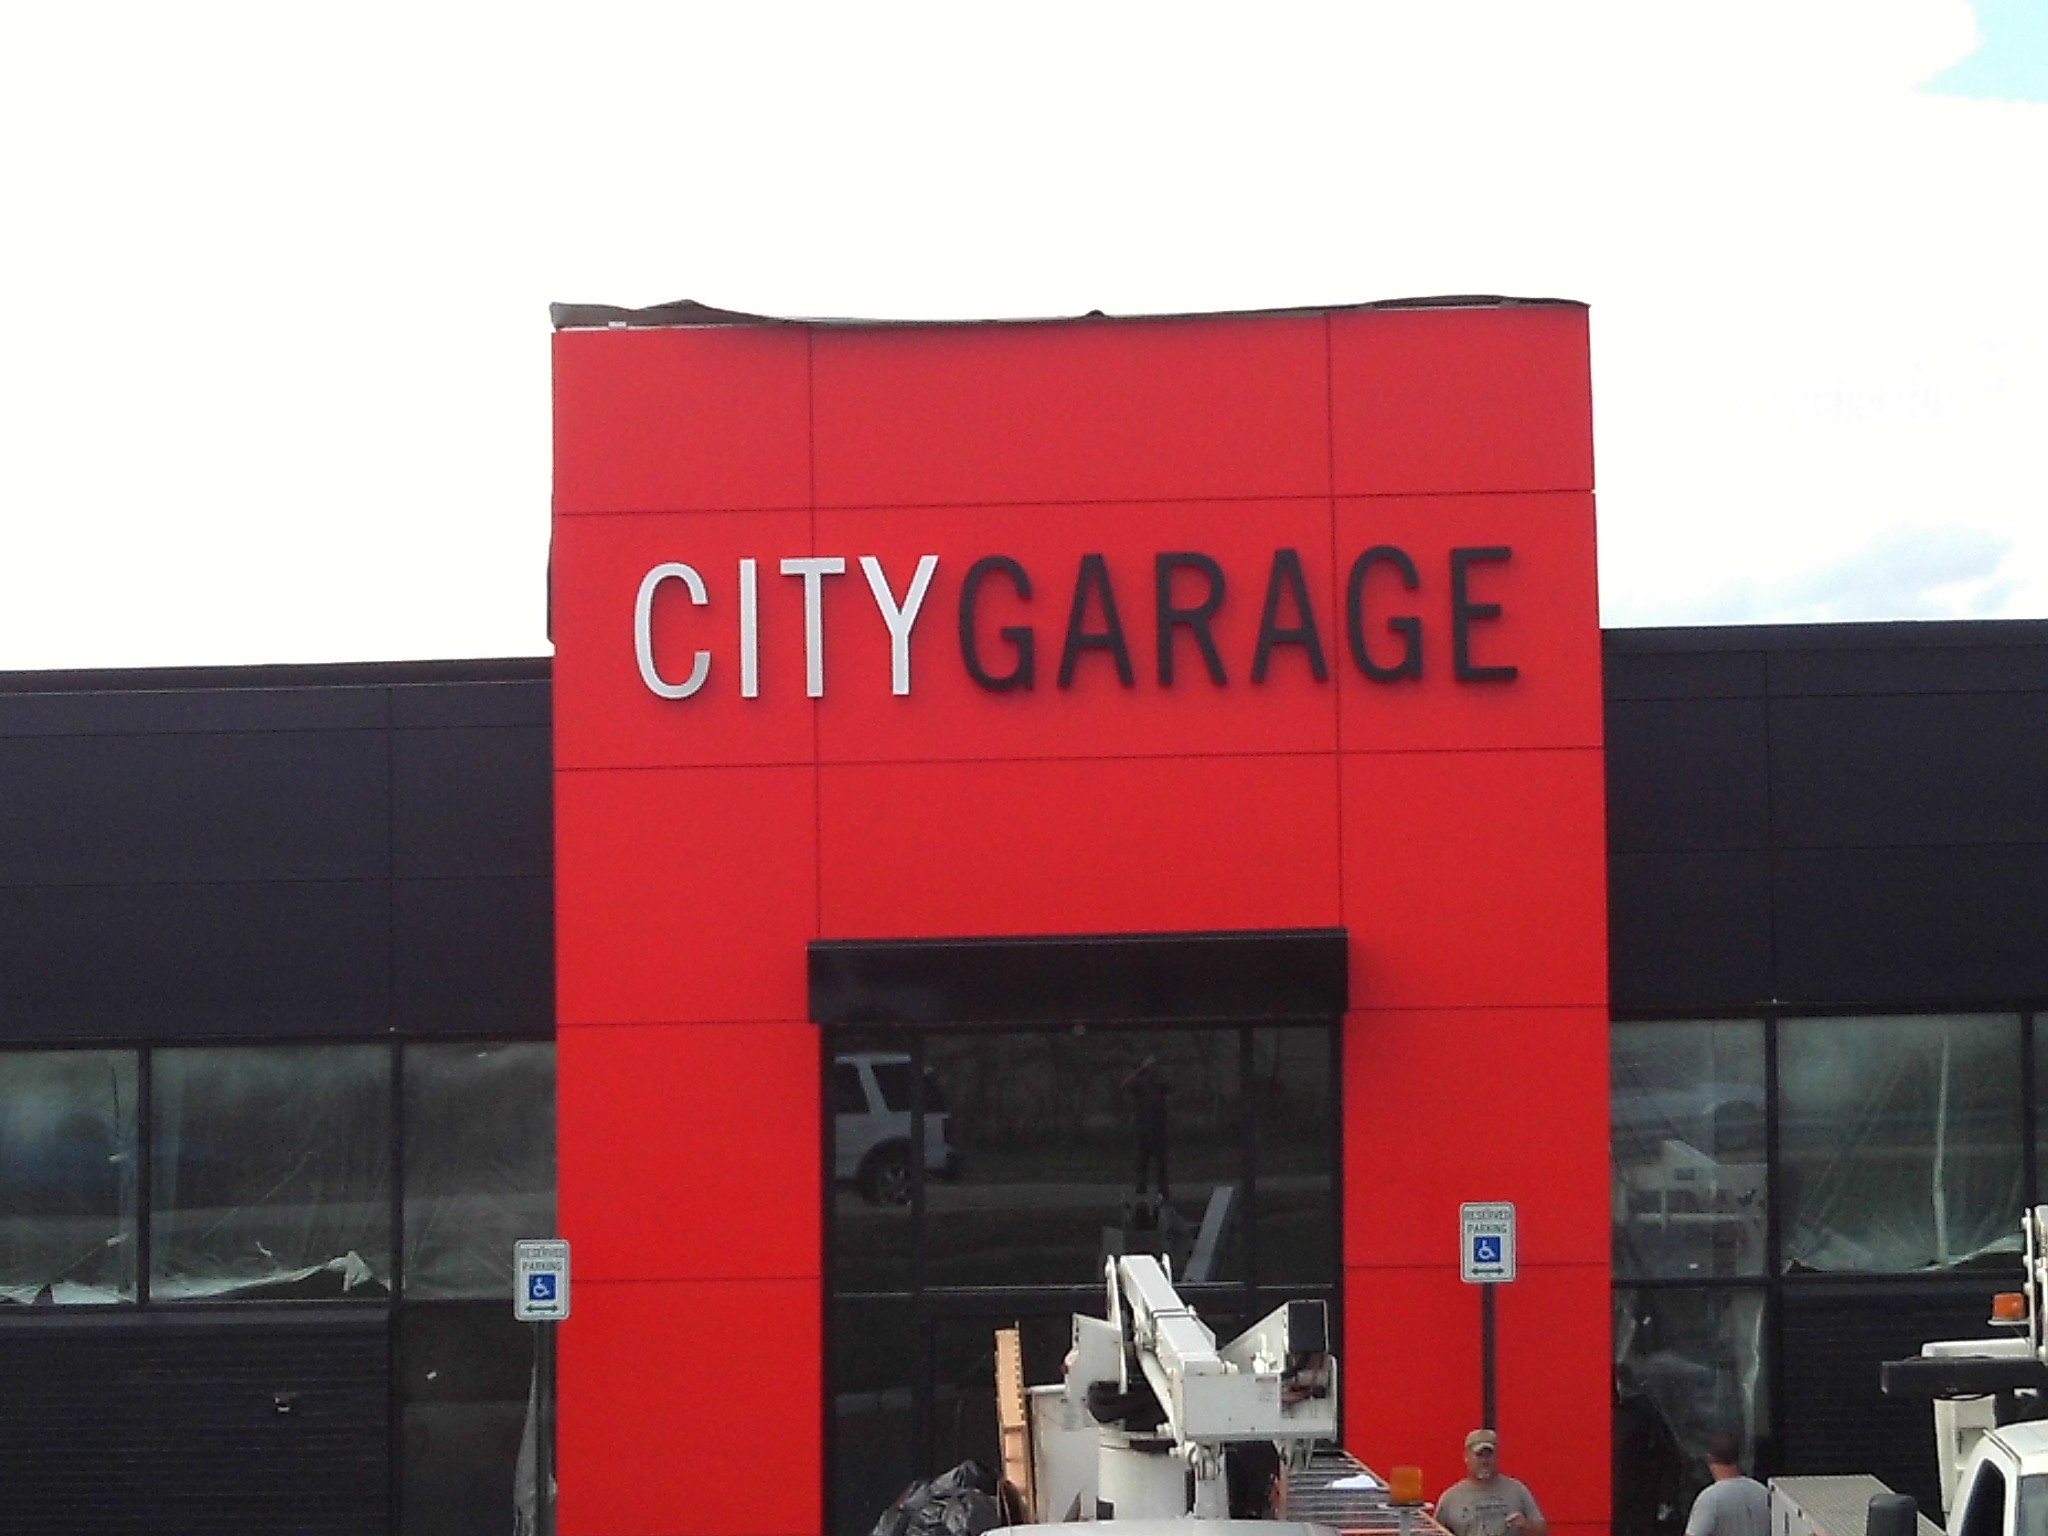 CITY GARAGE custom lettering